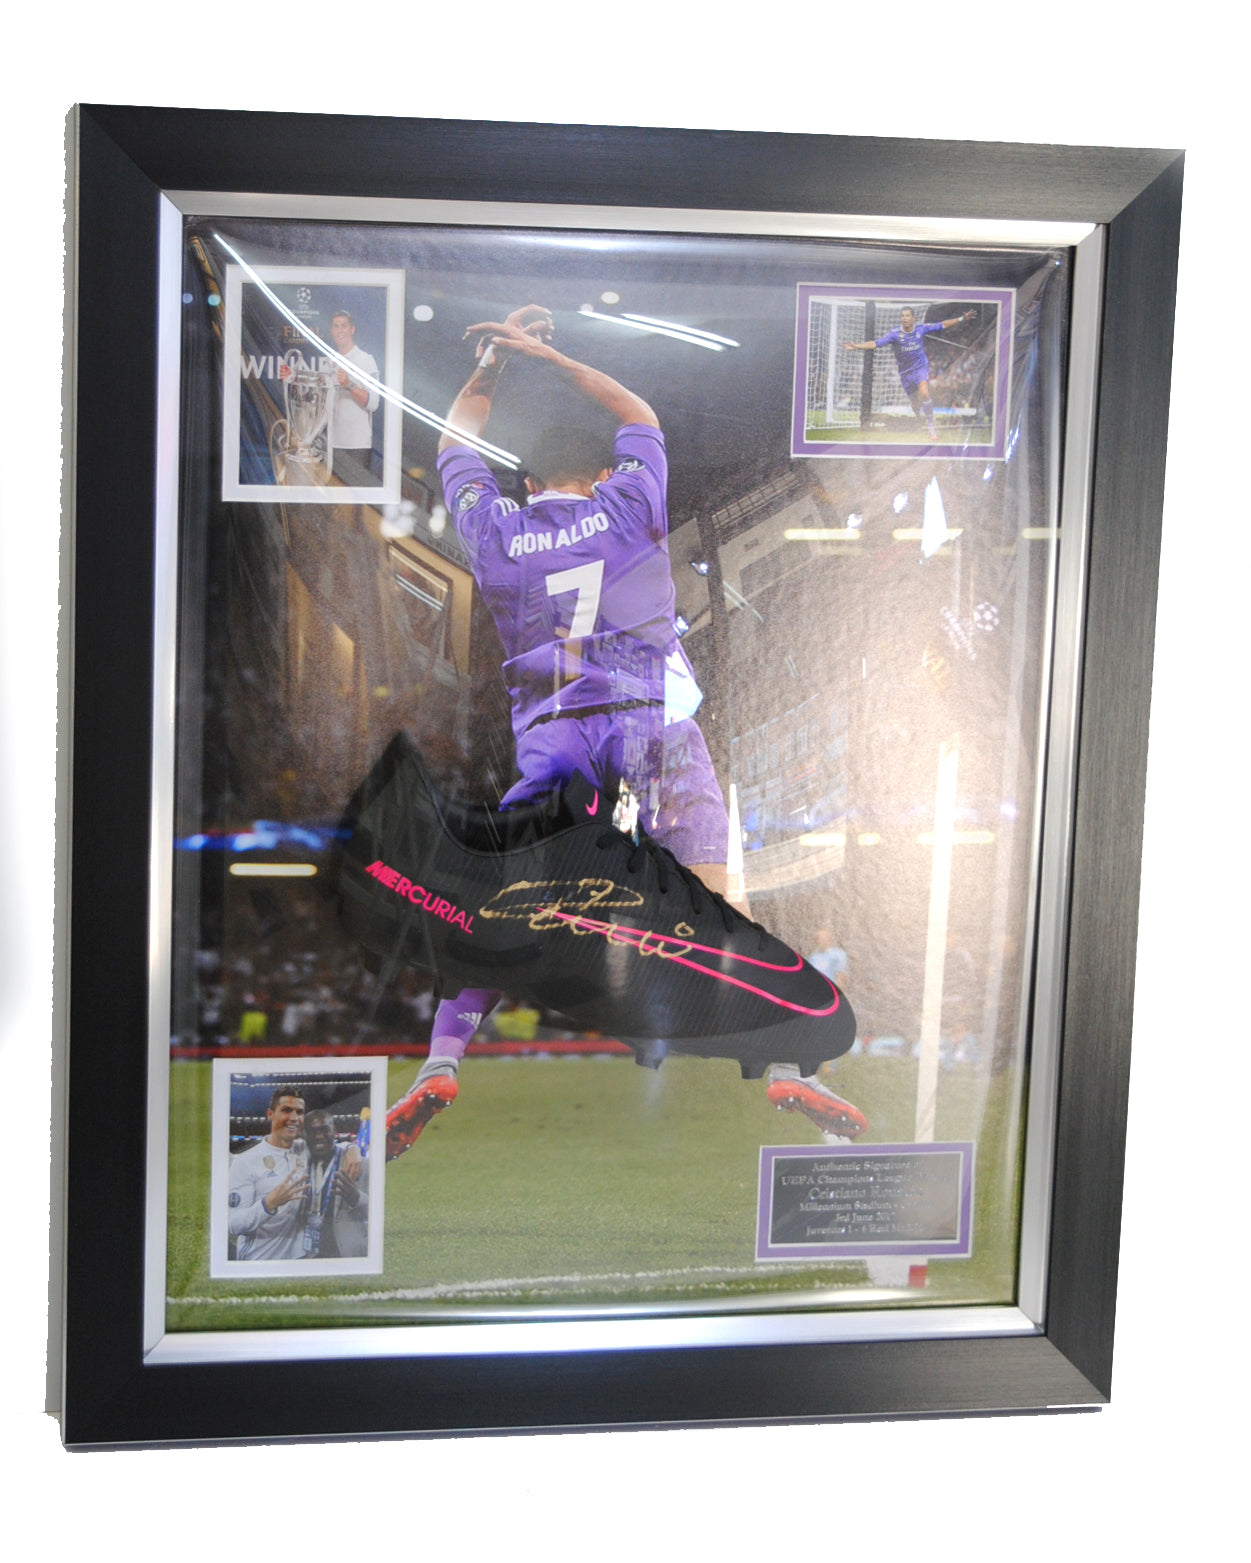 Signed Cristiano Ronaldo football boot and photos in acrylic dome (collection only)